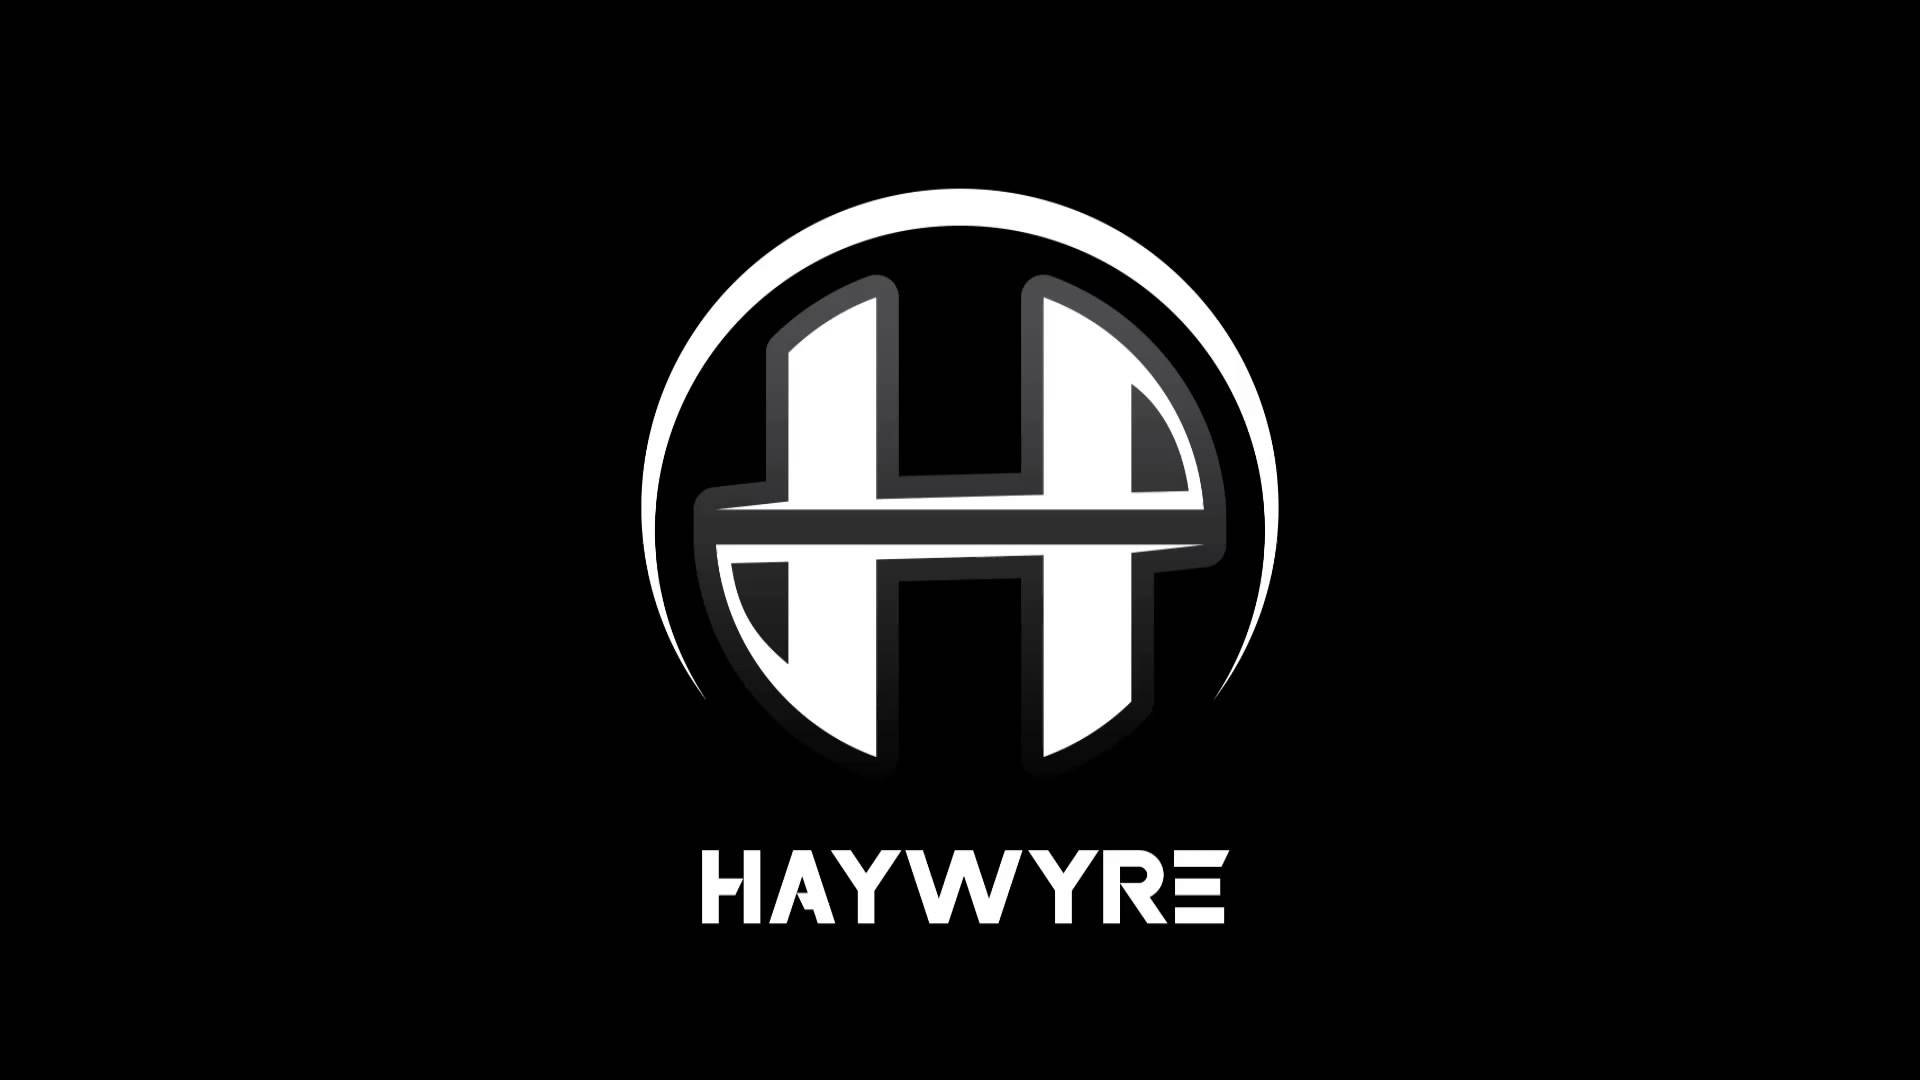 Haywyre strikes again edm joy edm music blog edm festivals haywyre strikes again edm joy edm music blog edm festivals electronic dance music news biocorpaavc